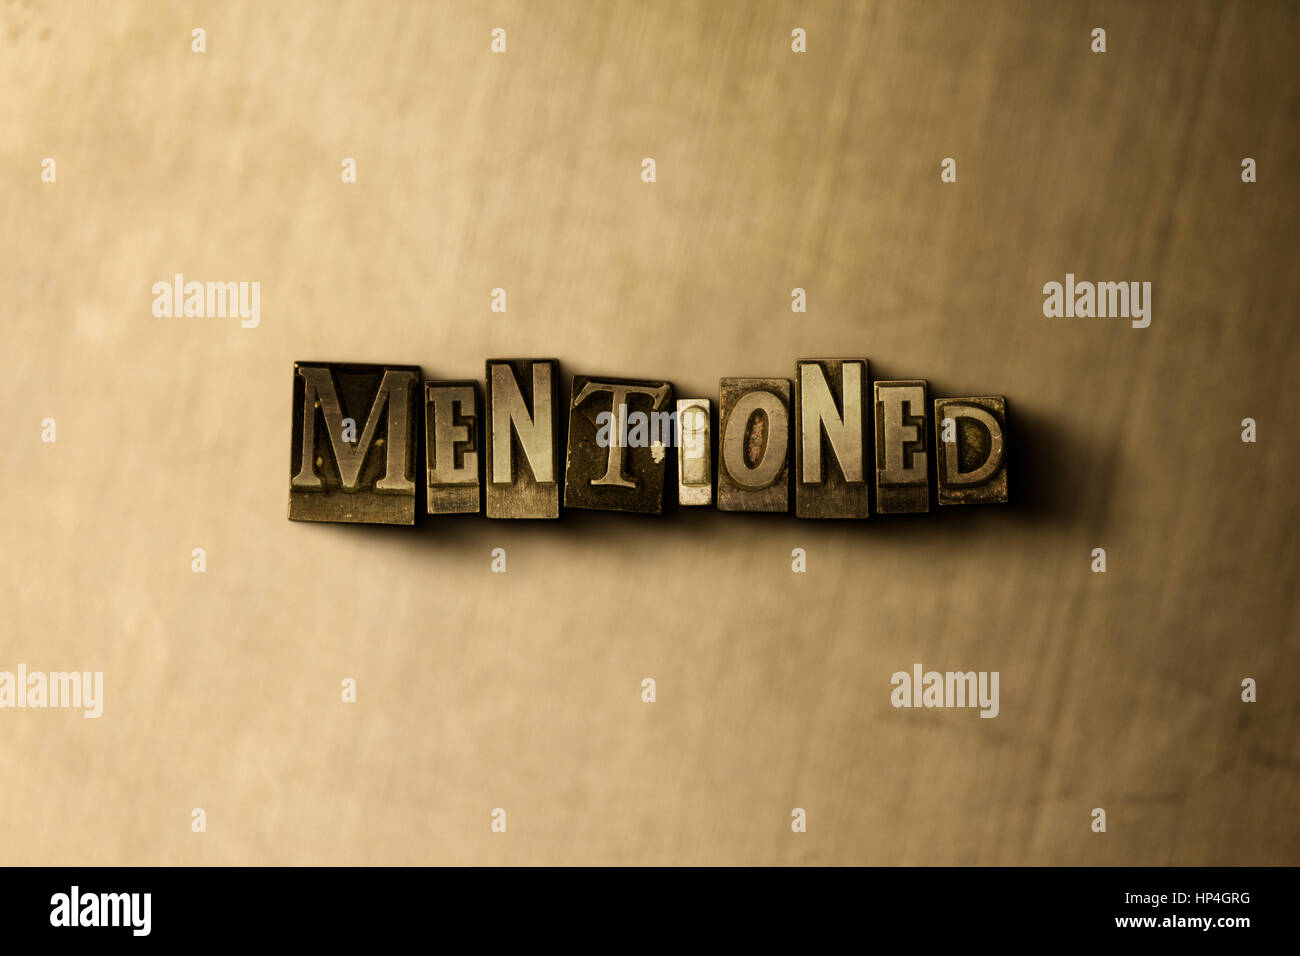 MENTIONED - close-up of grungy vintage typeset word on metal backdrop. Royalty free stock illustration.  Can be - Stock Image